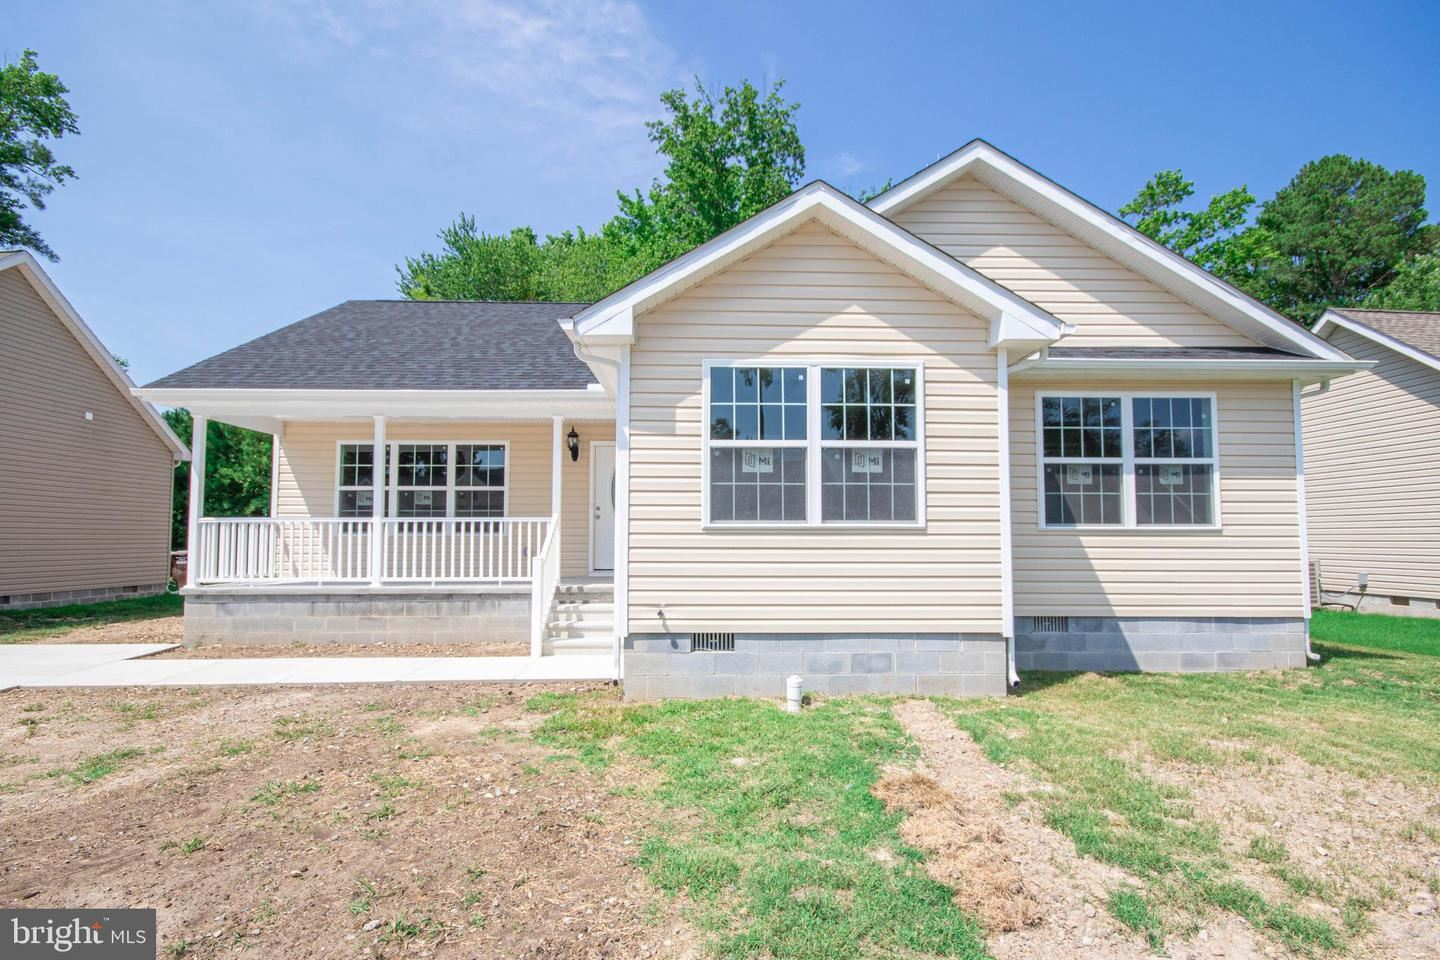 Photo of 827 AMES CT, CAMBRIDGE, MD 21613 (MLS # MDDO125750)